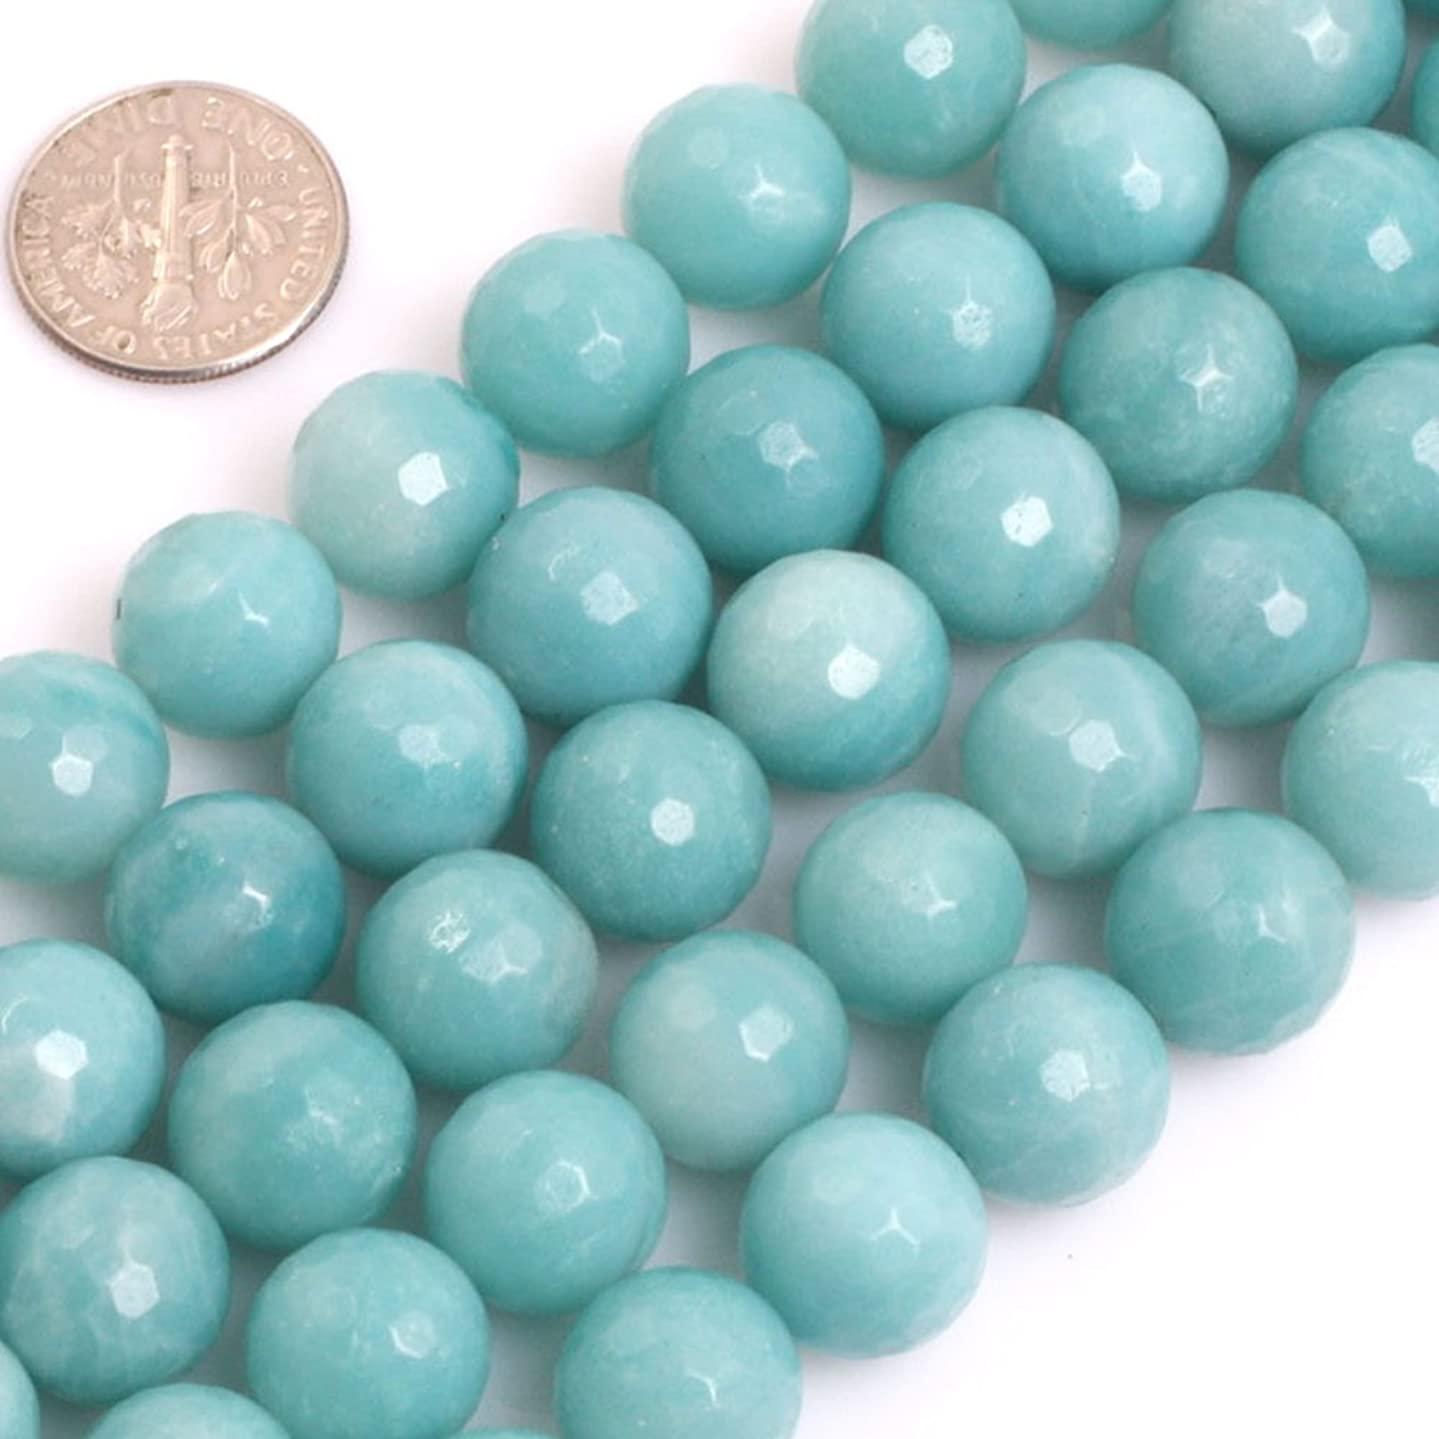 GEM-inside Natural Faceted 12mm Blue Amazonite Gemstone Loose Beads Handmade Round Energy Stone Beads for Jewelry Making Jewelry Beading Supplies for Women